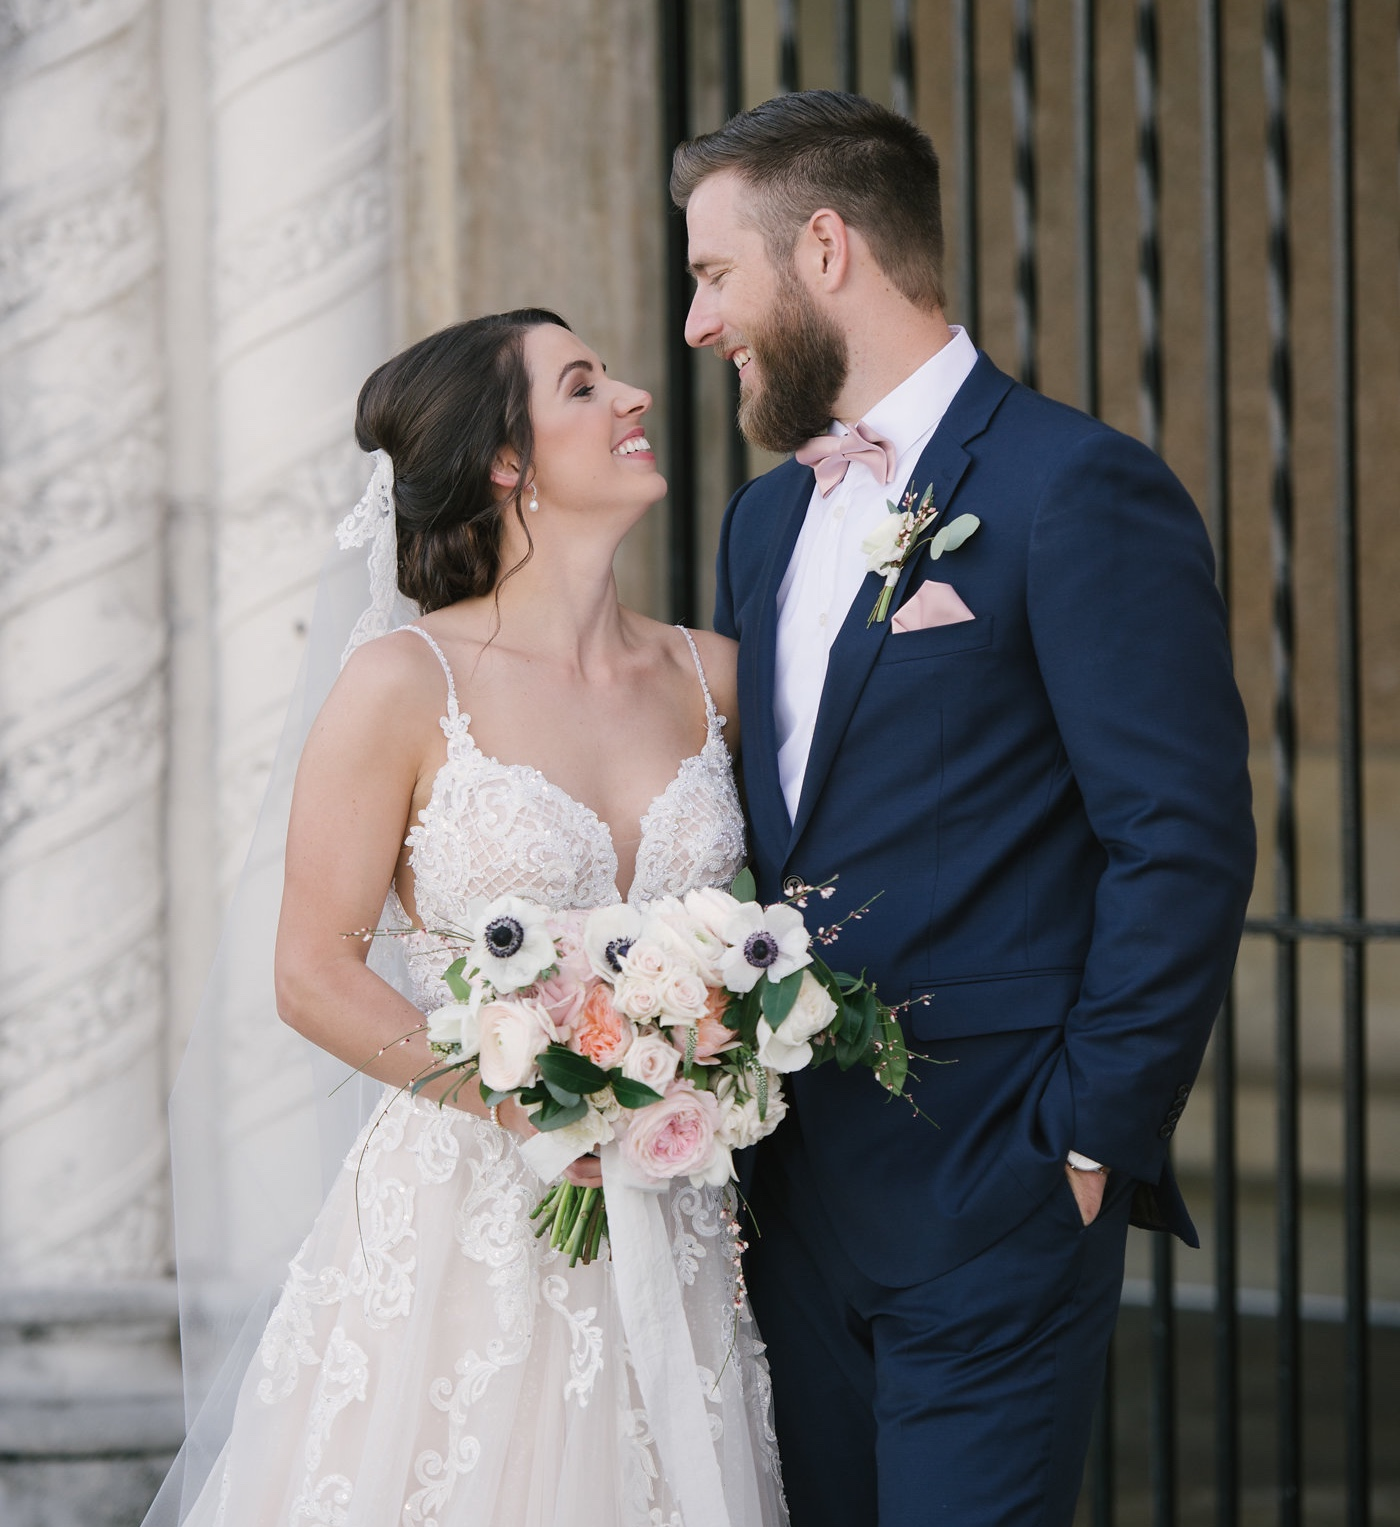 Kalyn + Joey's Romantic Lake Mirror Wedding